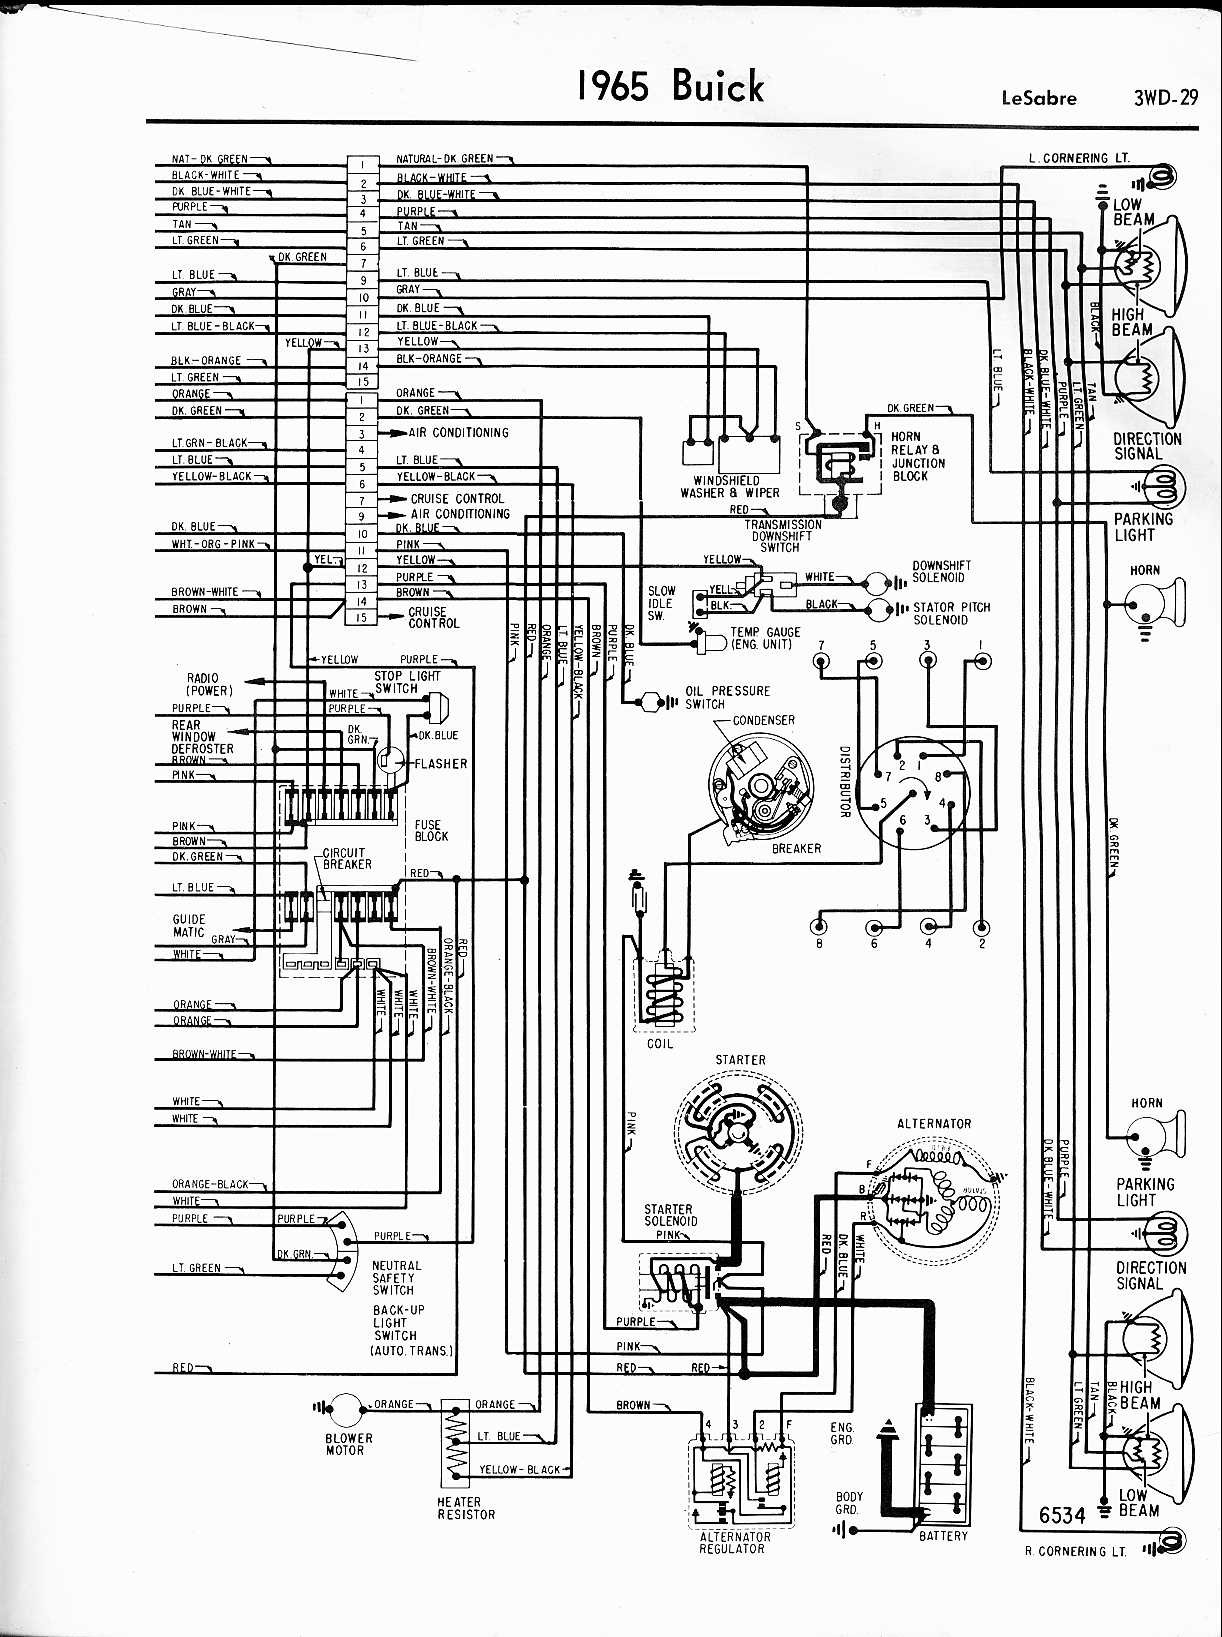 1995 Ford Explorer Engine Diagram I Need The Wiring For A 1996 Blower Motor 96 Ranger Furthermore Of